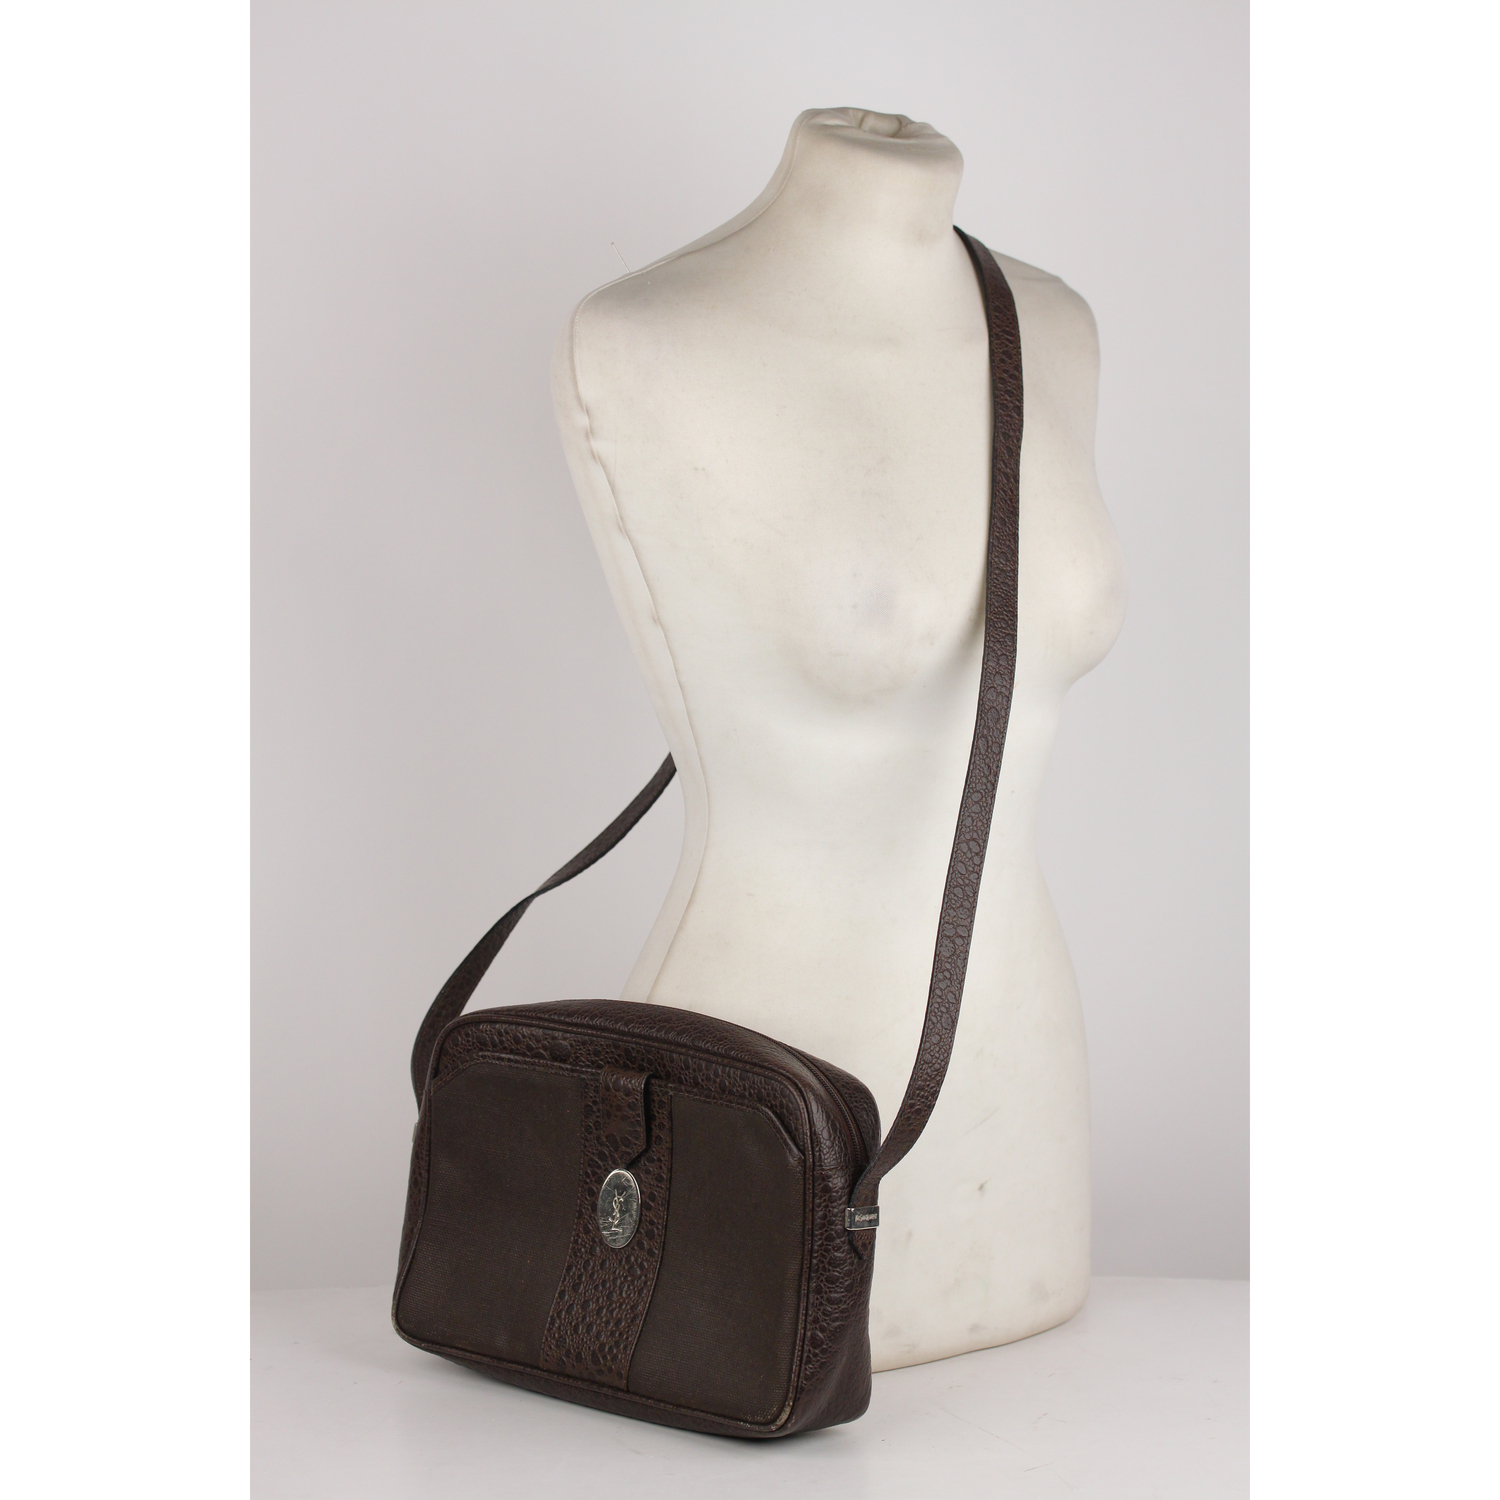 Authentic Yves Saint Laurent Vintage Brown and 50 similar items. 010c407b  e6fb 5b59 930d 917fc9b7f1a2 f7e81ec697856